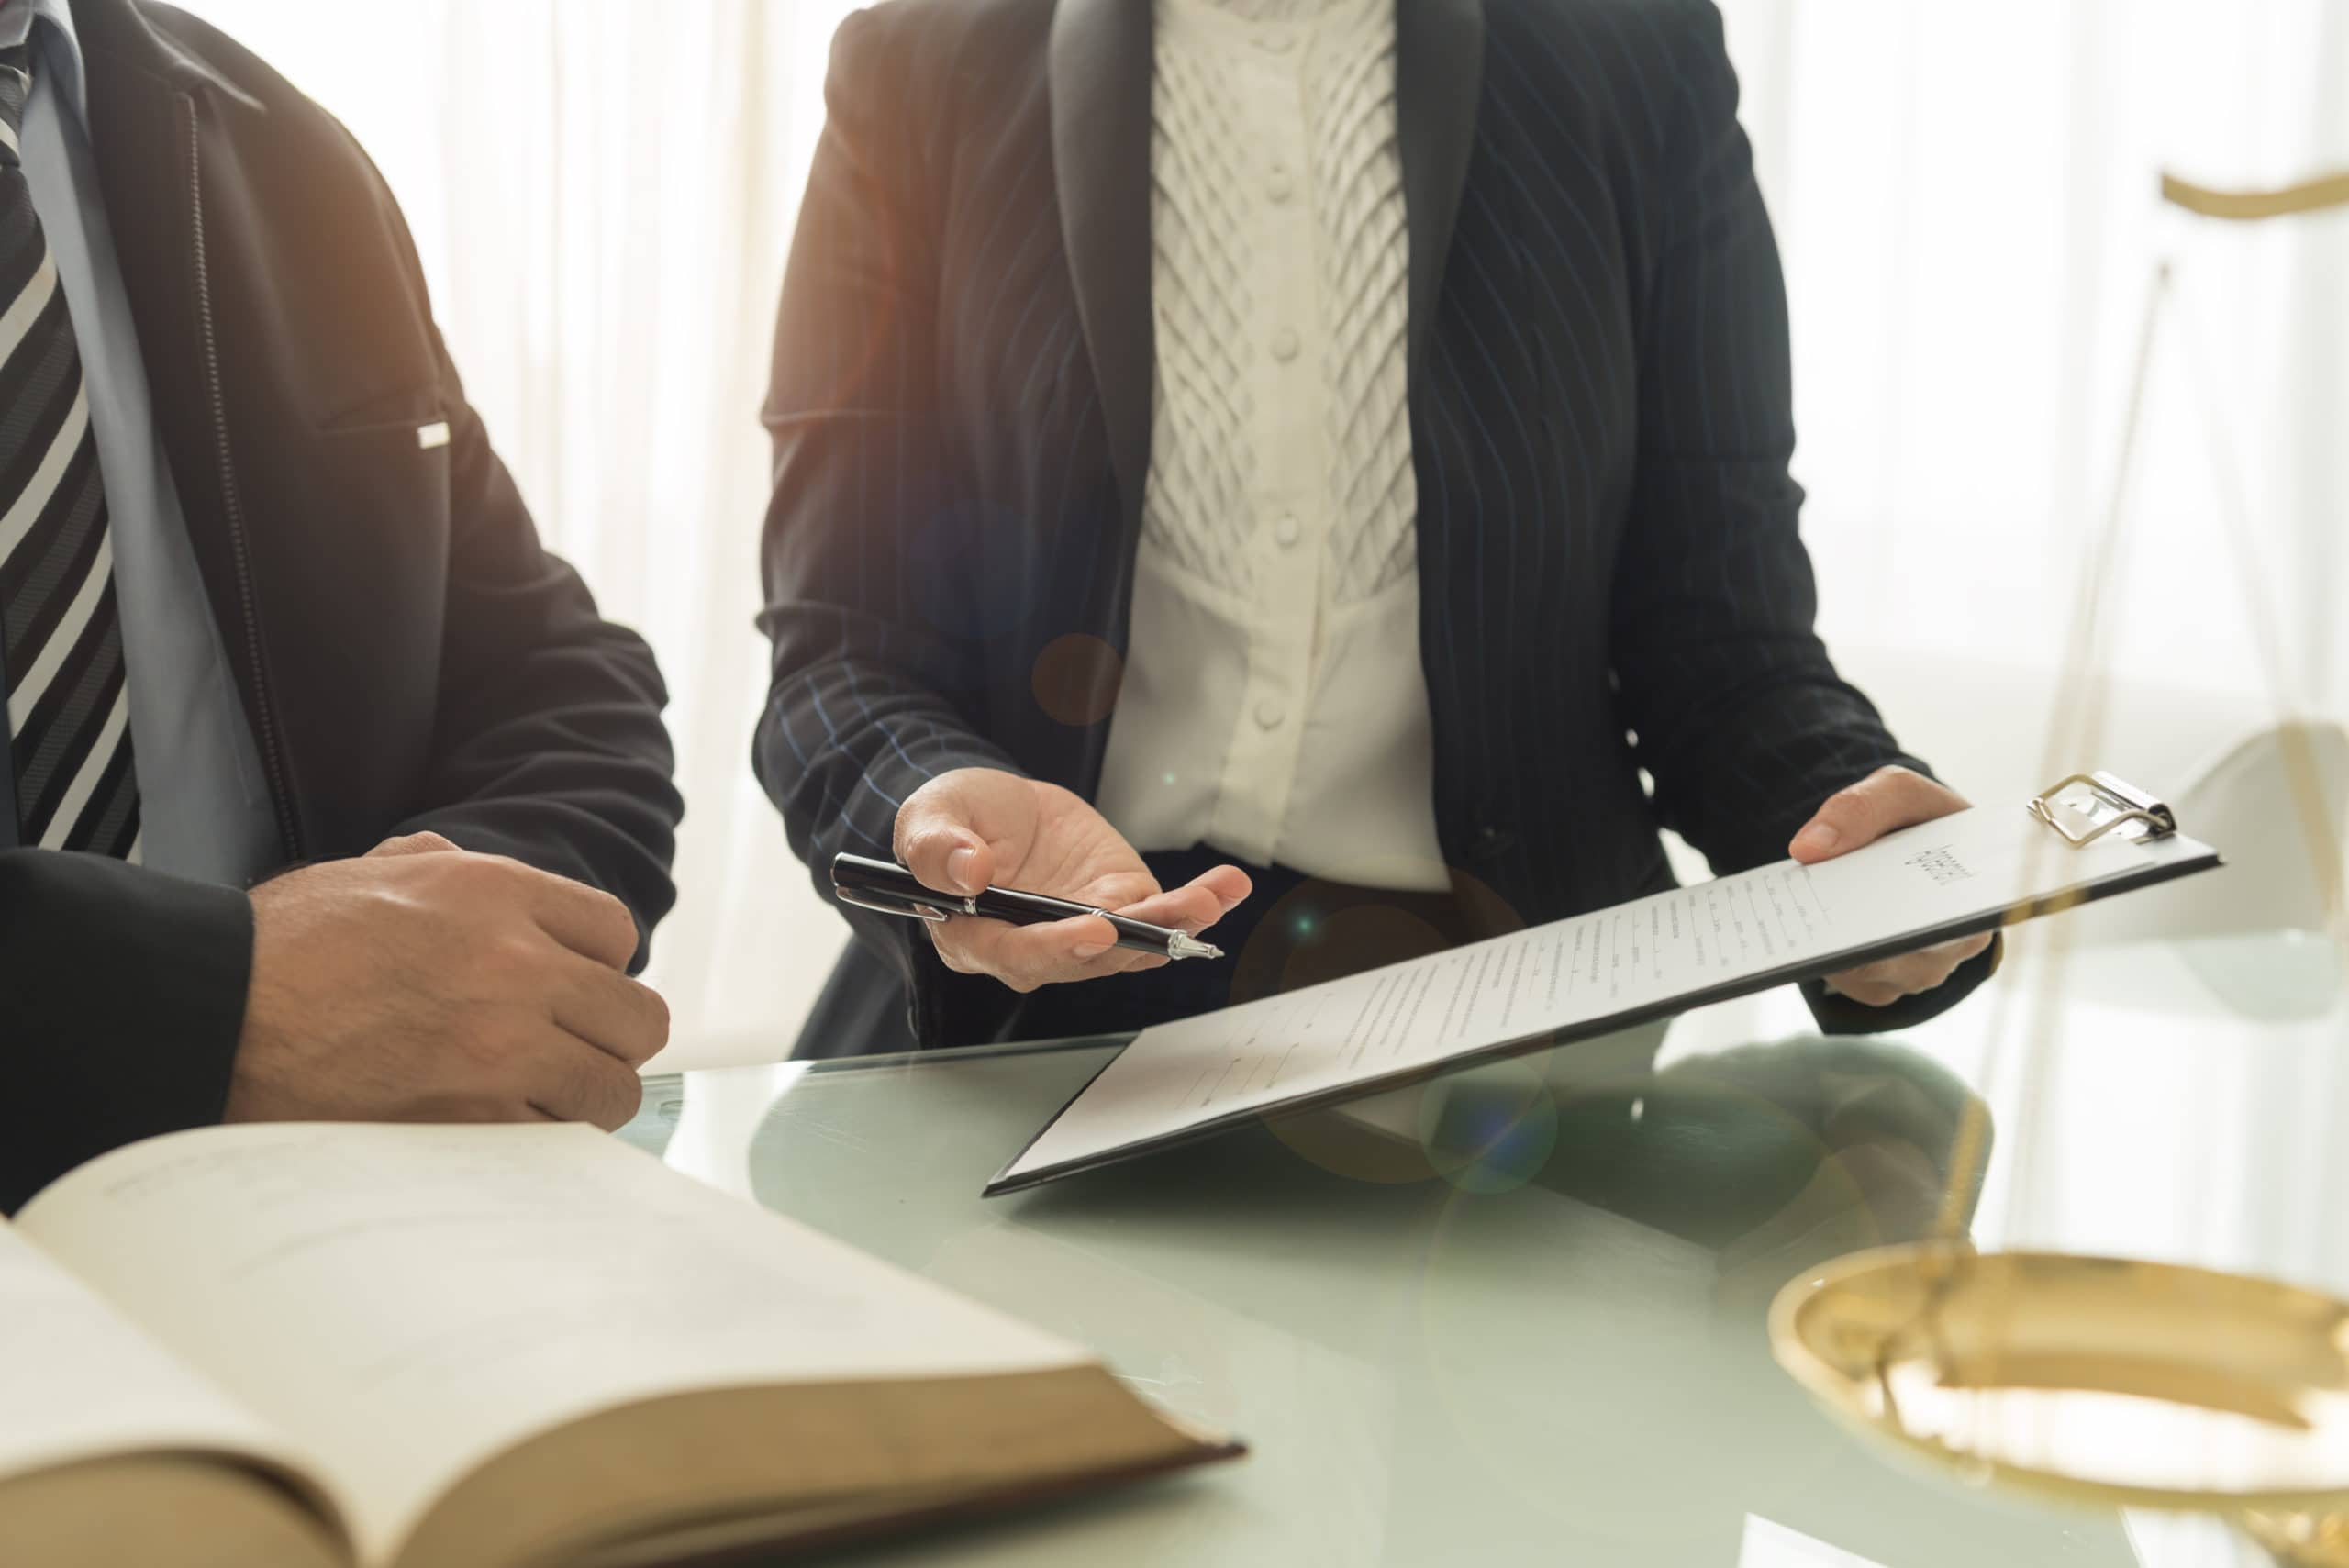 How Long do I have to File a Claim Against My Financial Advisor?